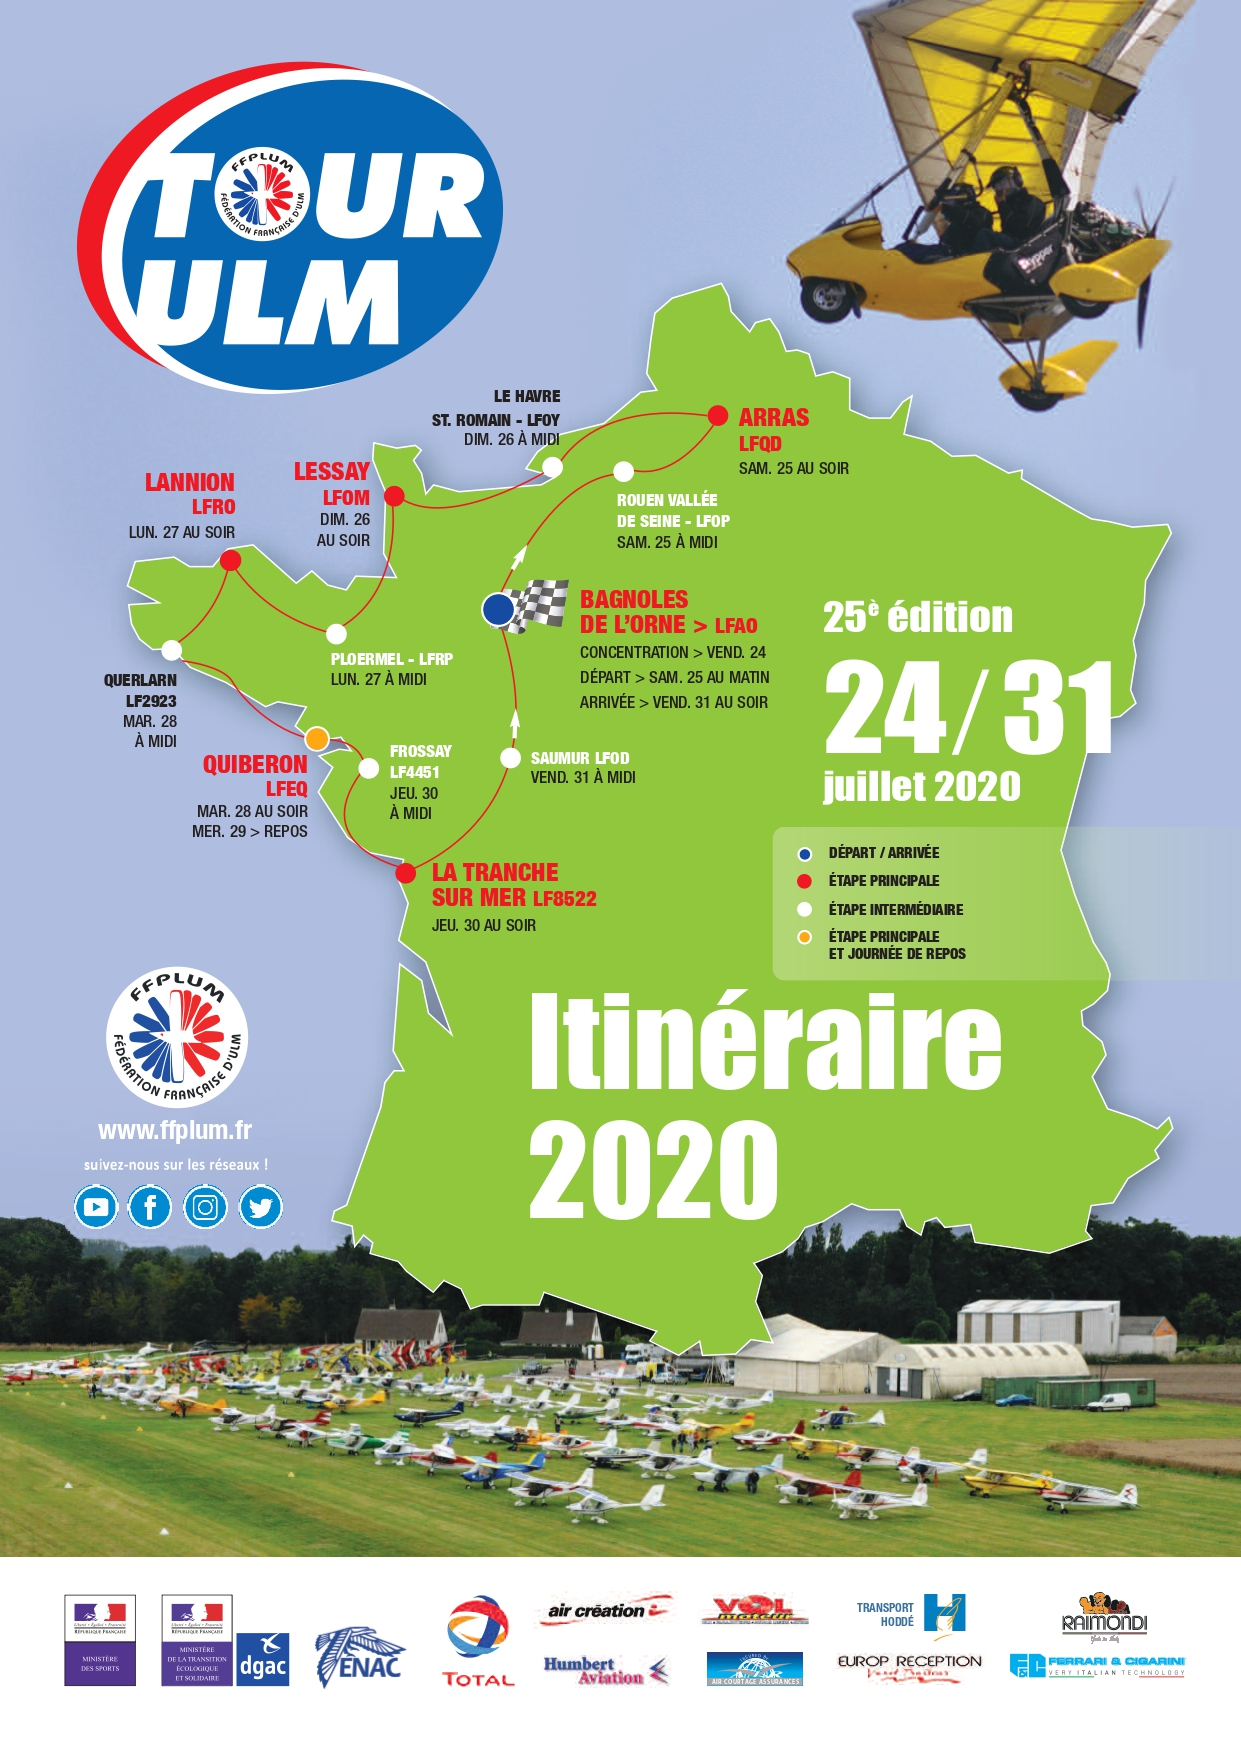 Le blog du Tour ULM 2020